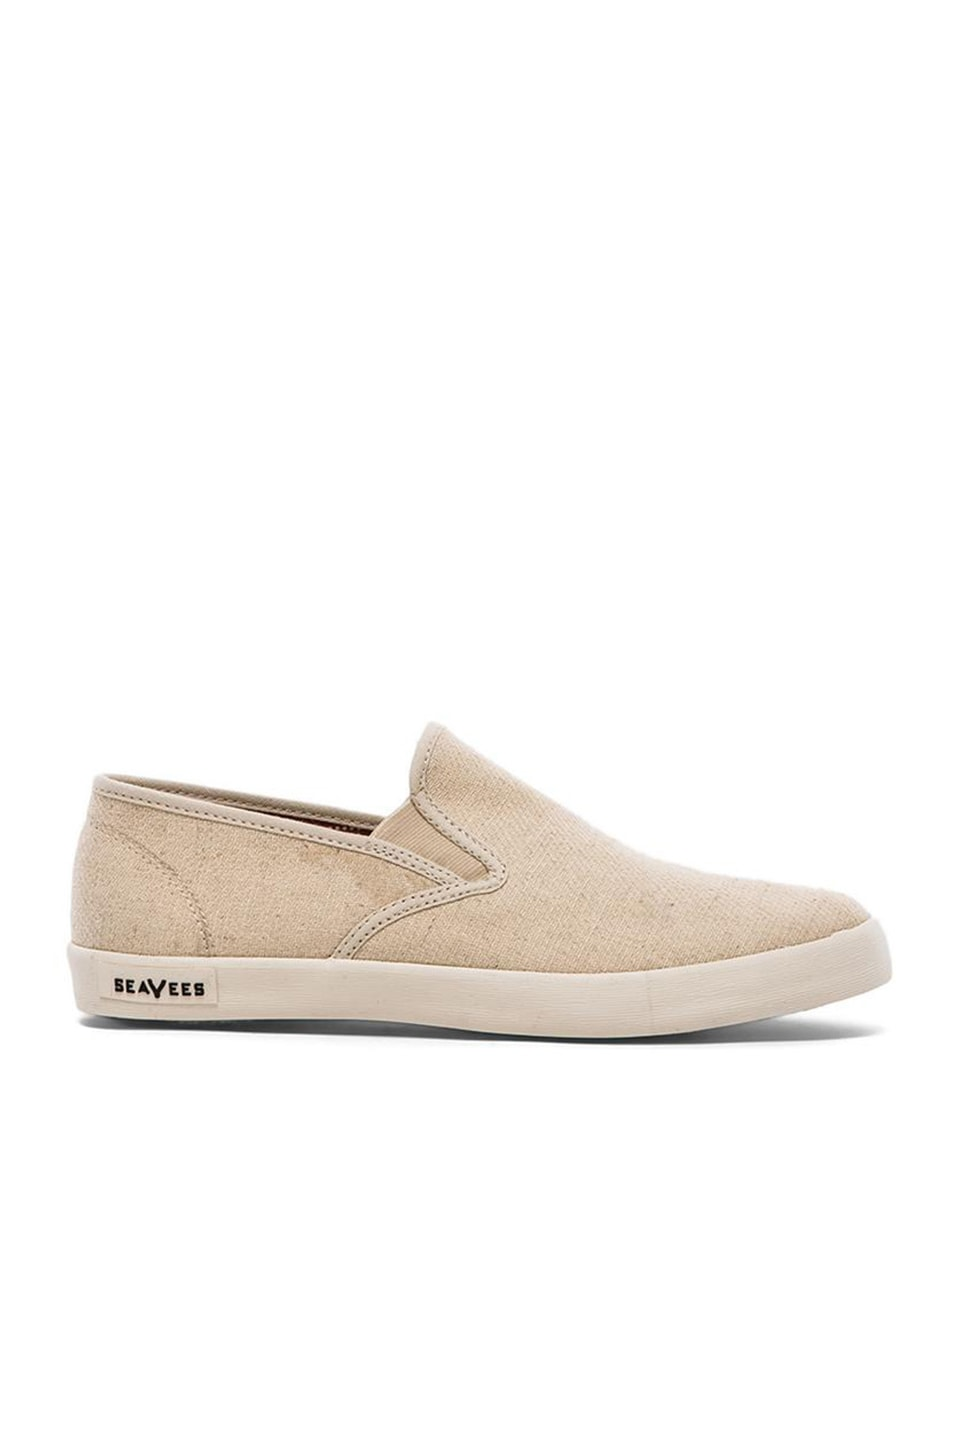 SeaVees 02/64 Baja Slip On Hemp in Natural